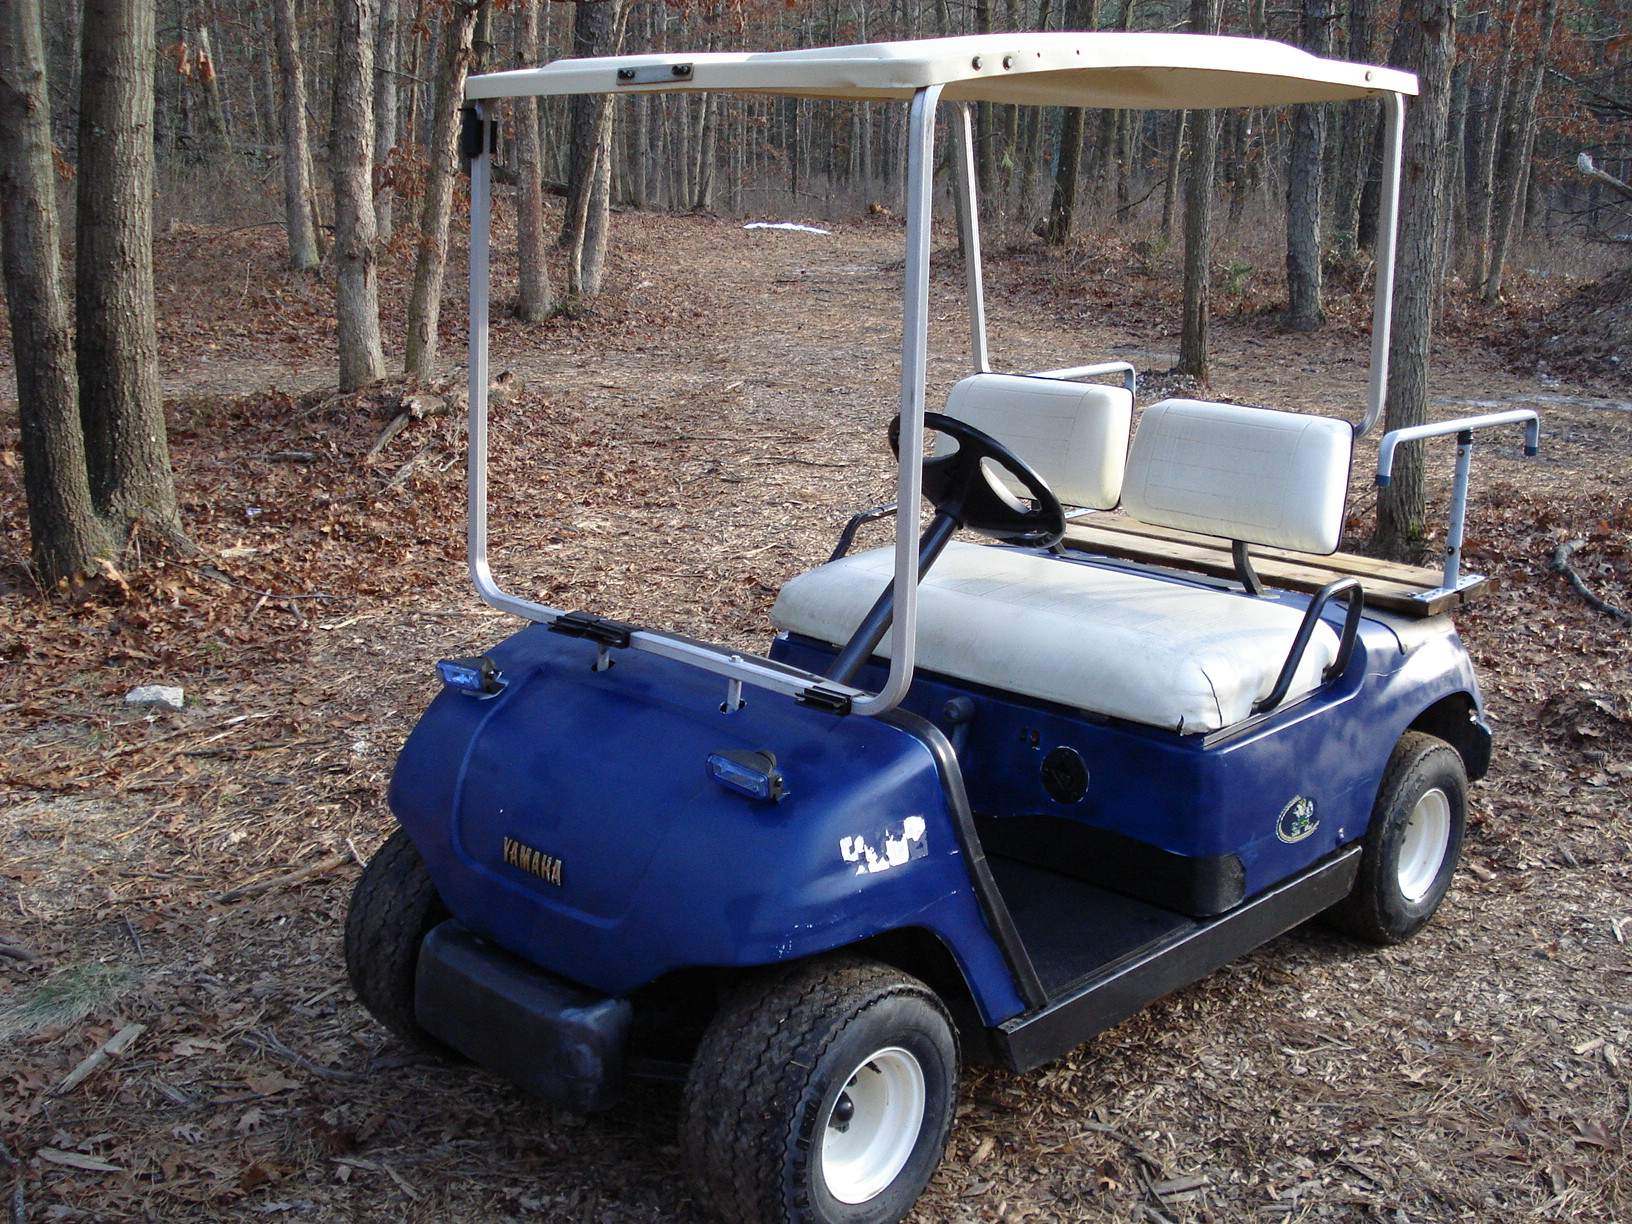 Golfbeveragecart furthermore Club Car Golf Cart Precedent I2 Graphic Kit 2008 2013 389 additionally 2014 Ez Go Rxv Gunsmoke Grey Golf Cart 23 Pmh together with 1985 Yamaha Ytm225dxn 8872 besides 291793074933. on yamaha golf carts by year